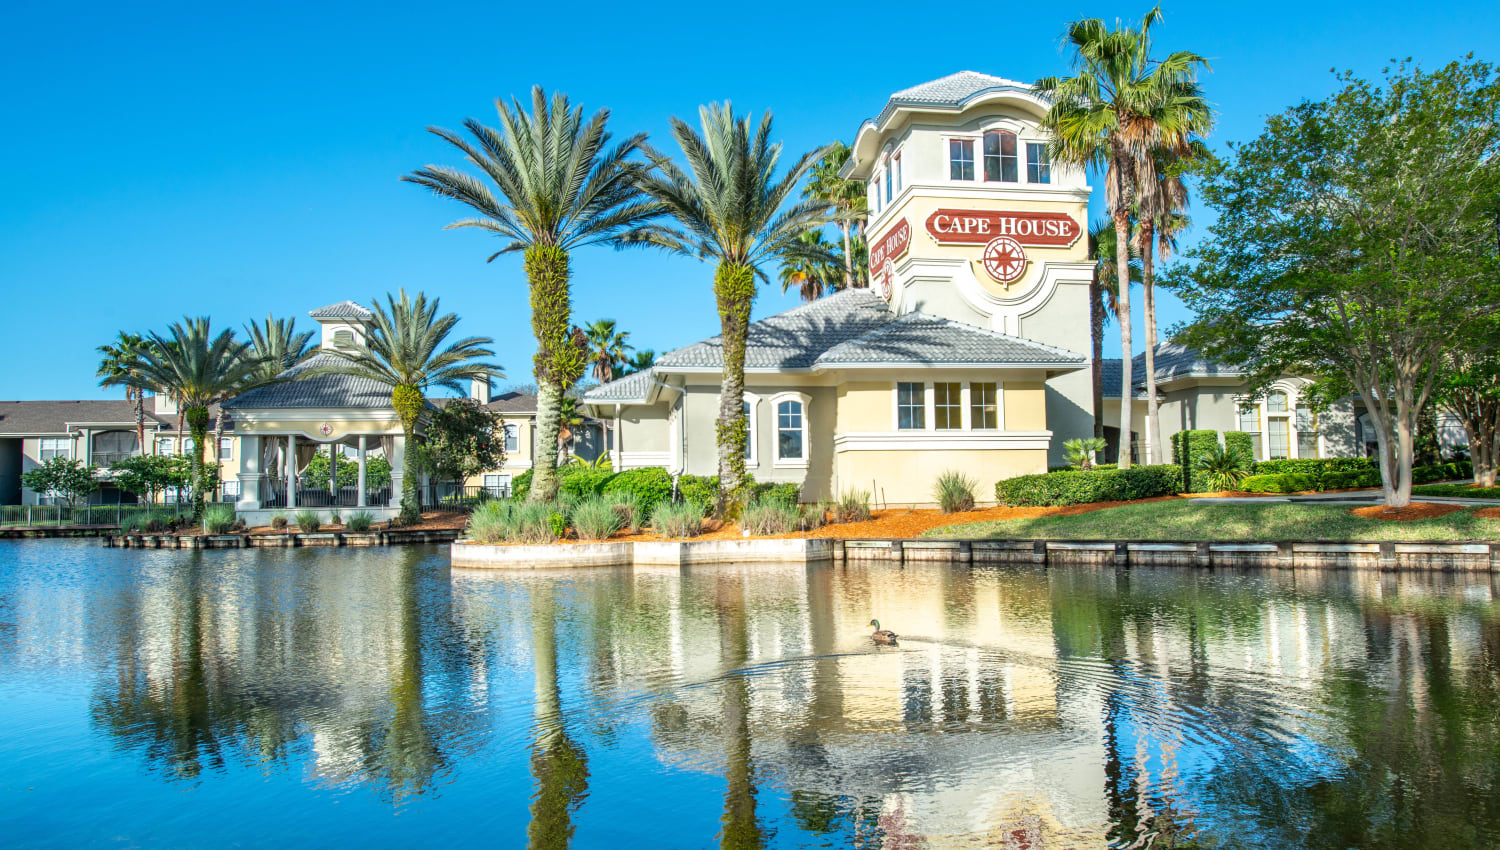 Resident clubhouse on the lake at Cape House in Jacksonville, Florida